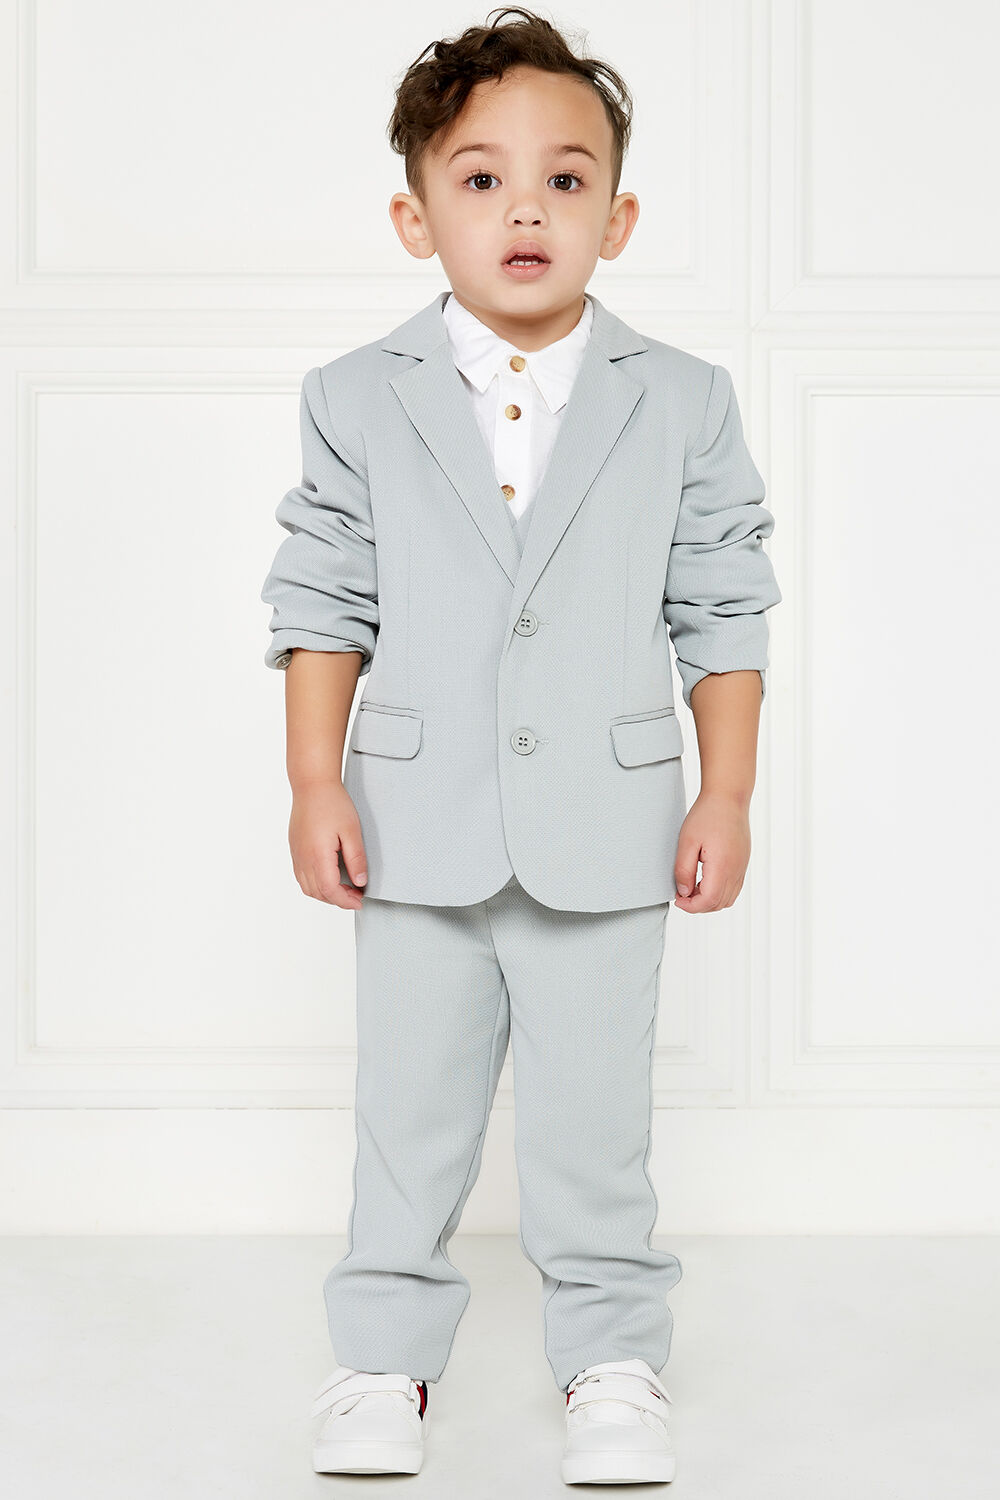 TEXTURED SUIT JACKET in colour FROST GRAY